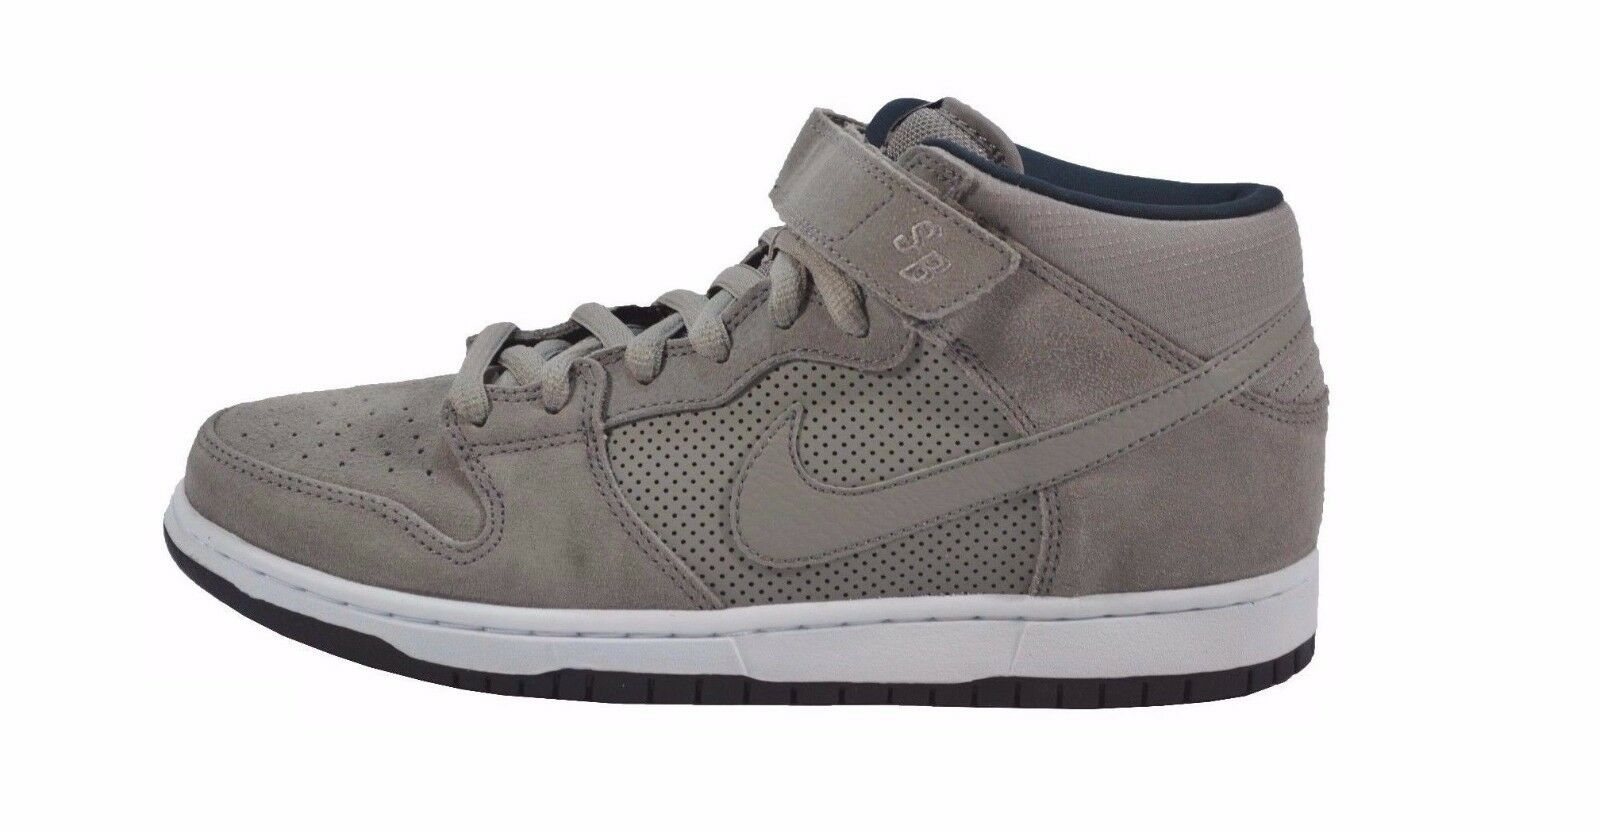 Nike DUNK  MID PRO SB Sport  DUNK Gris  blanc Skateboarding Discounted (219) homme chaussures fe1357